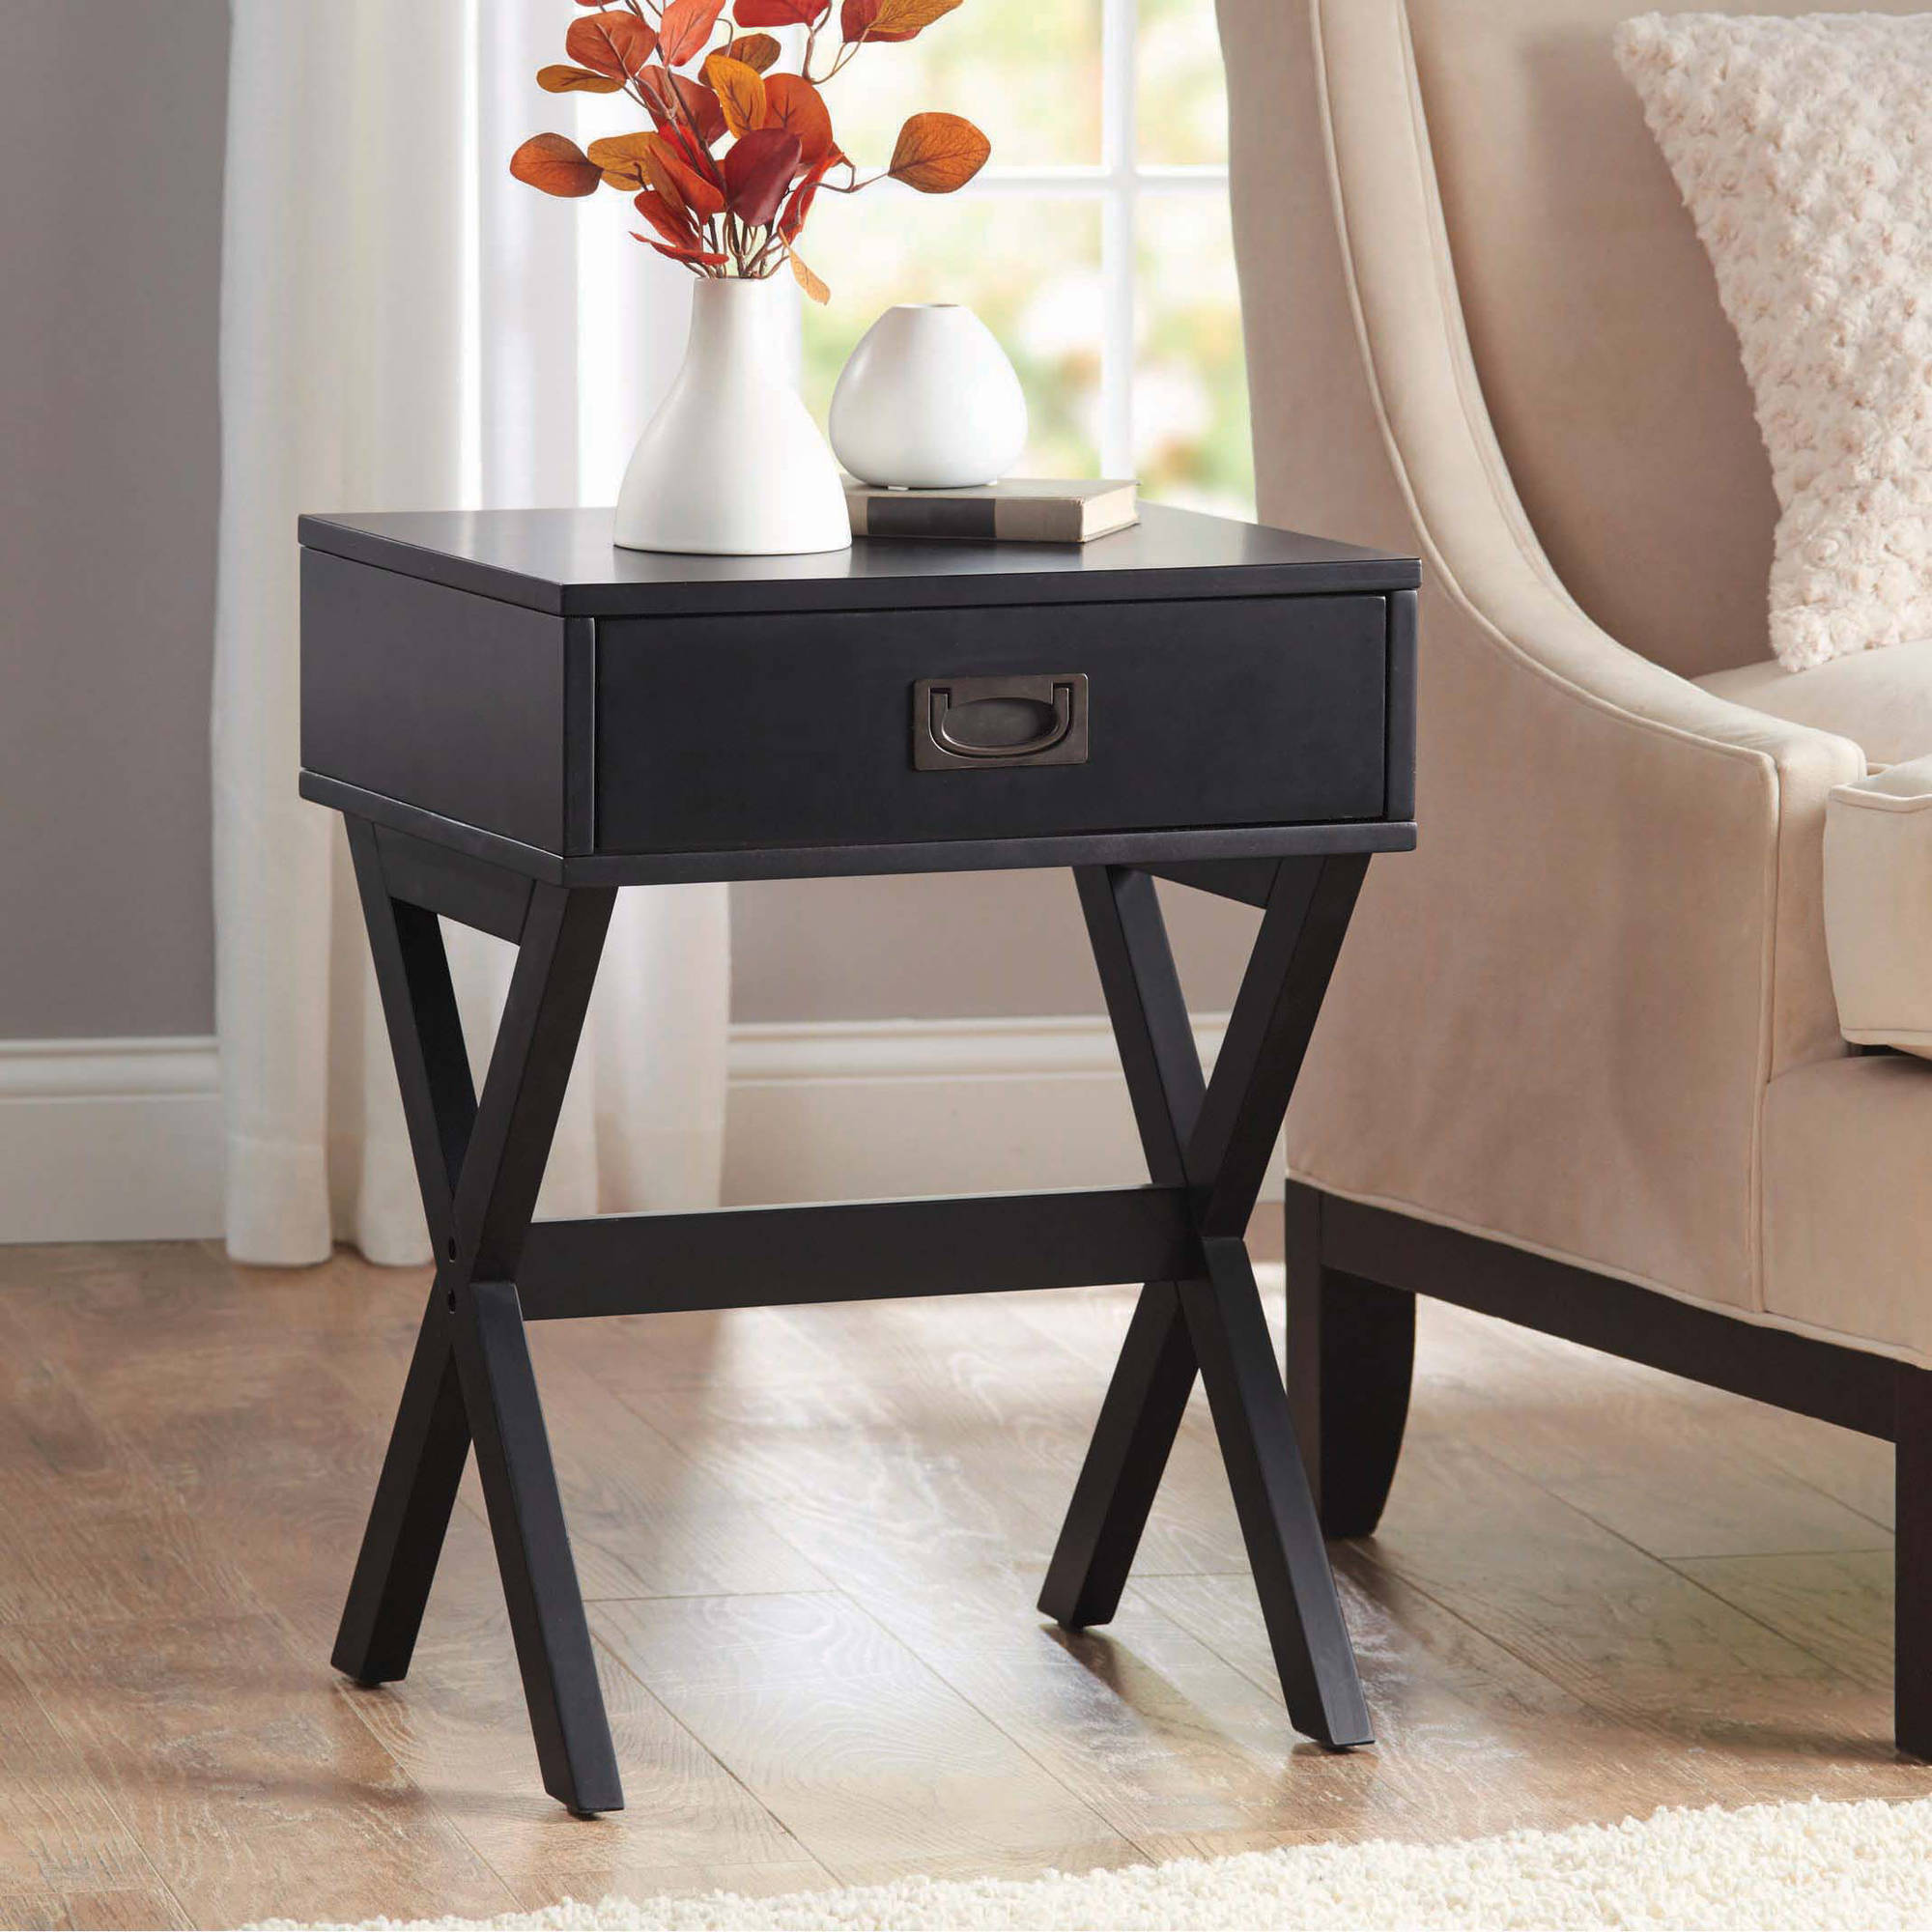 the super fun black side table with drawer ture mira road better homes gardens leg accent multiple colors orange outdoor wicker furniture clearance concrete top coffee christmas